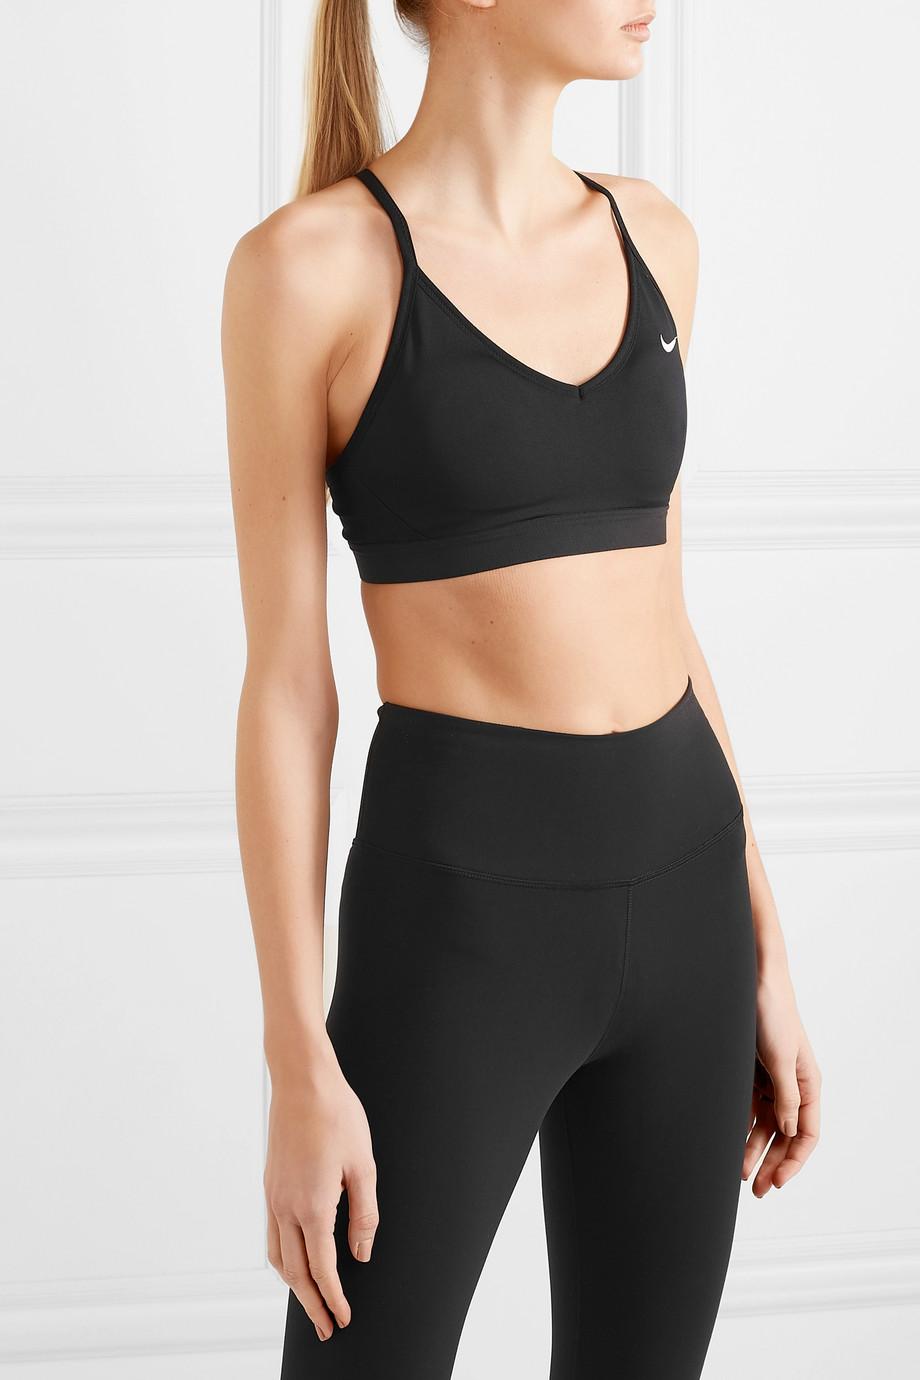 Nike Indy mesh-trimmed Dri-FIT sports bra